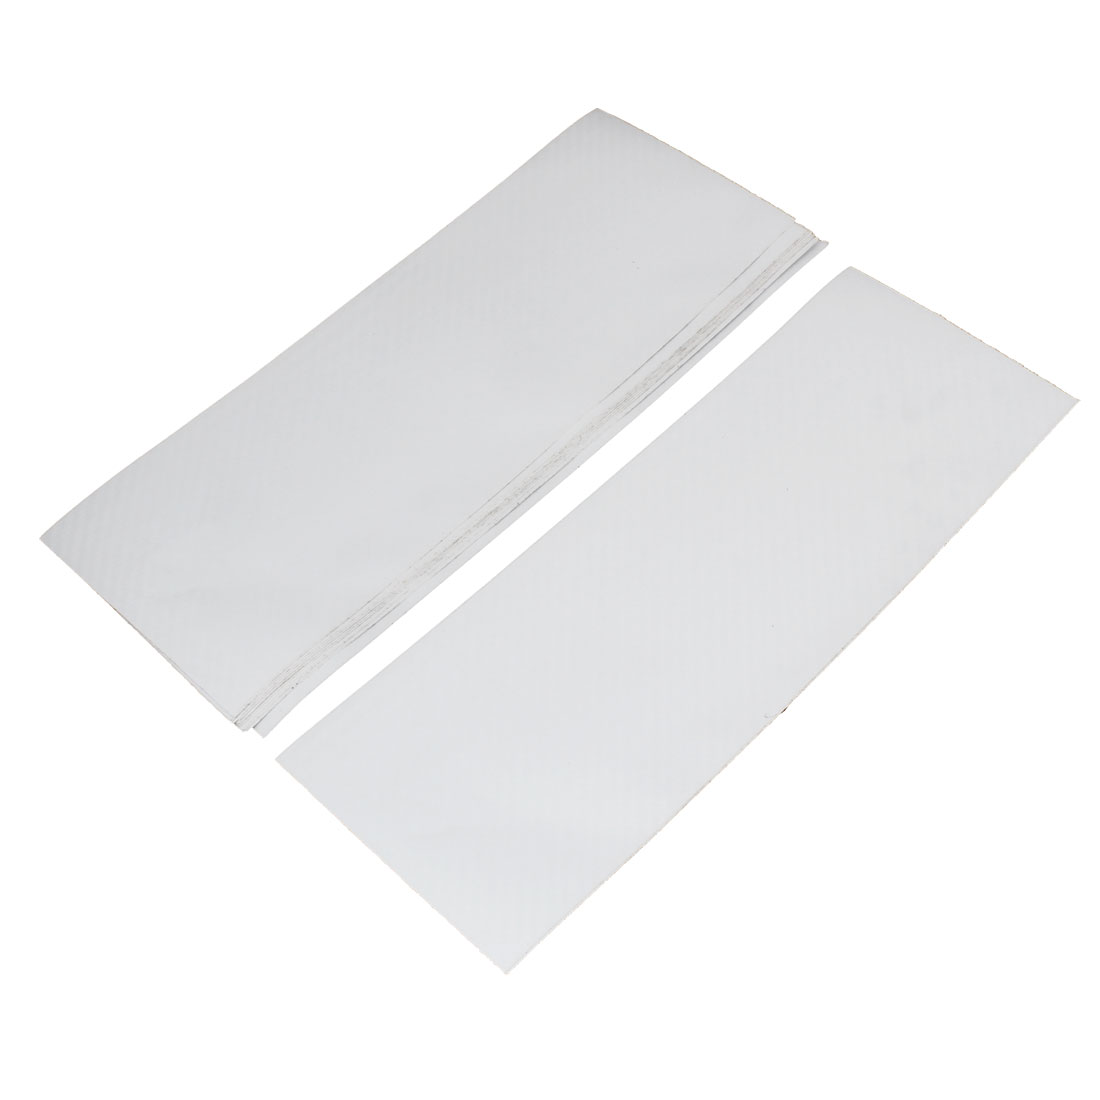 10pcs 300 x 106mm Self Adhesive Carbon Fiber Protective Film Sticker White for Car